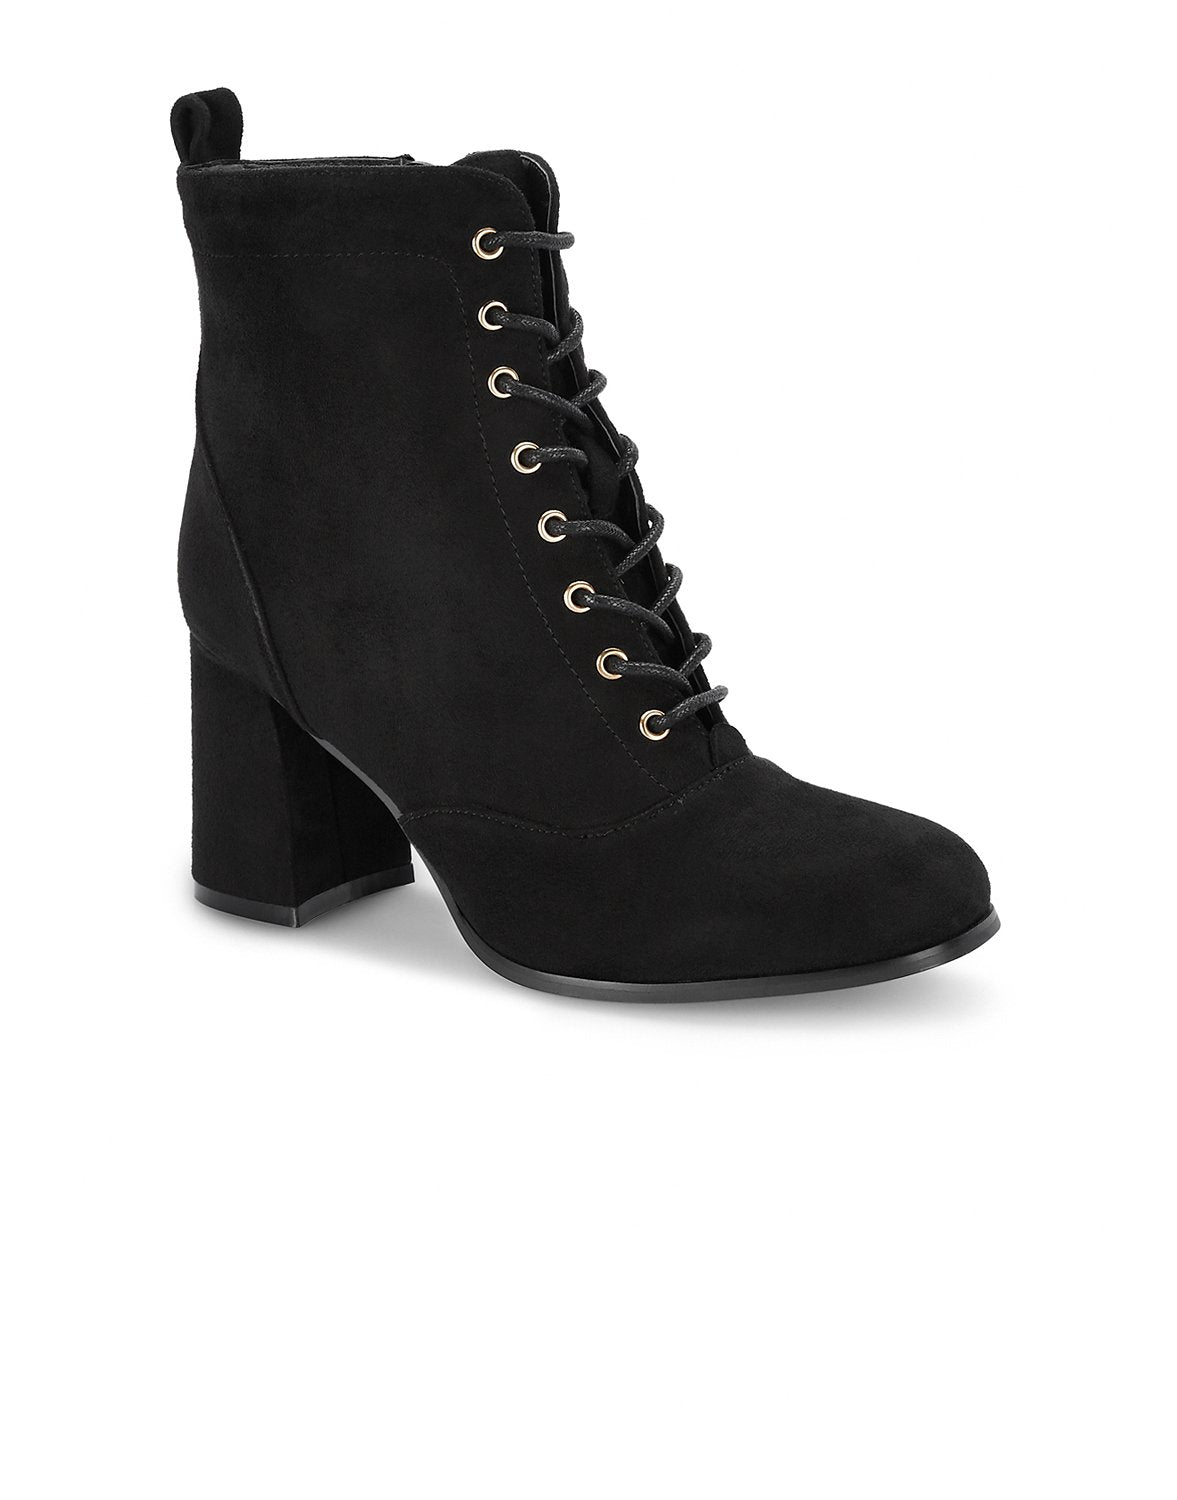 Aline Black Block Heeled Boots